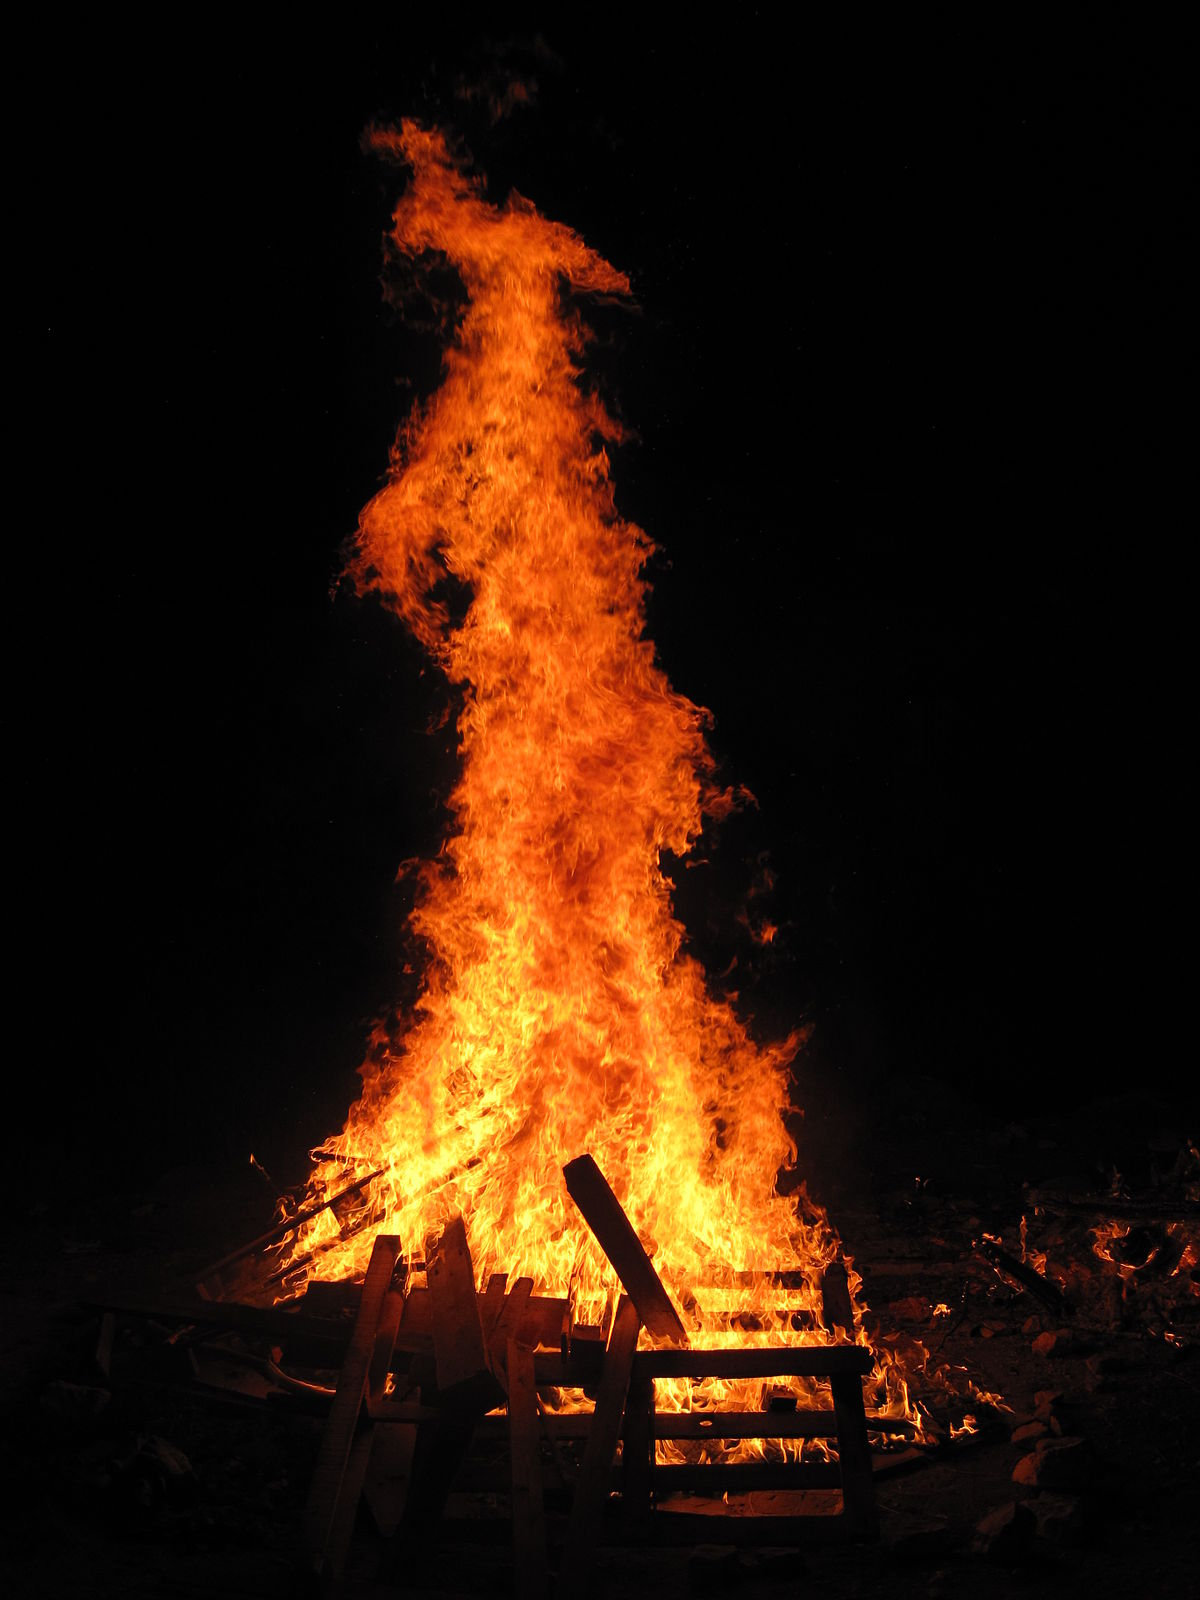 Bonfire - Wikipedia